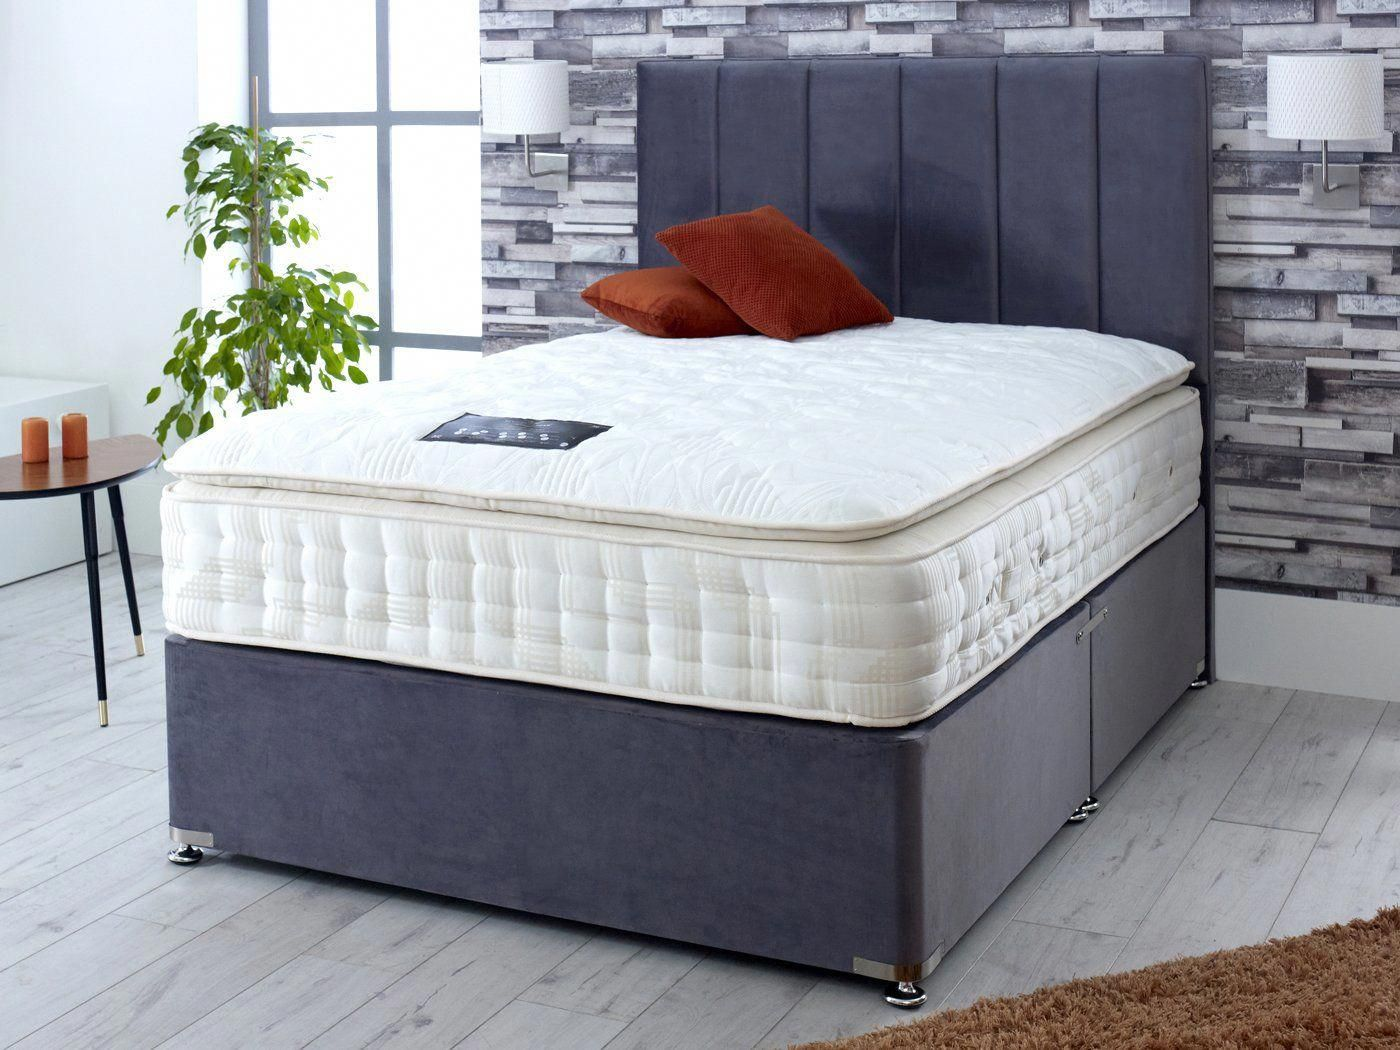 Divan Bed Set Includes Divan Base Mattress And Headboard